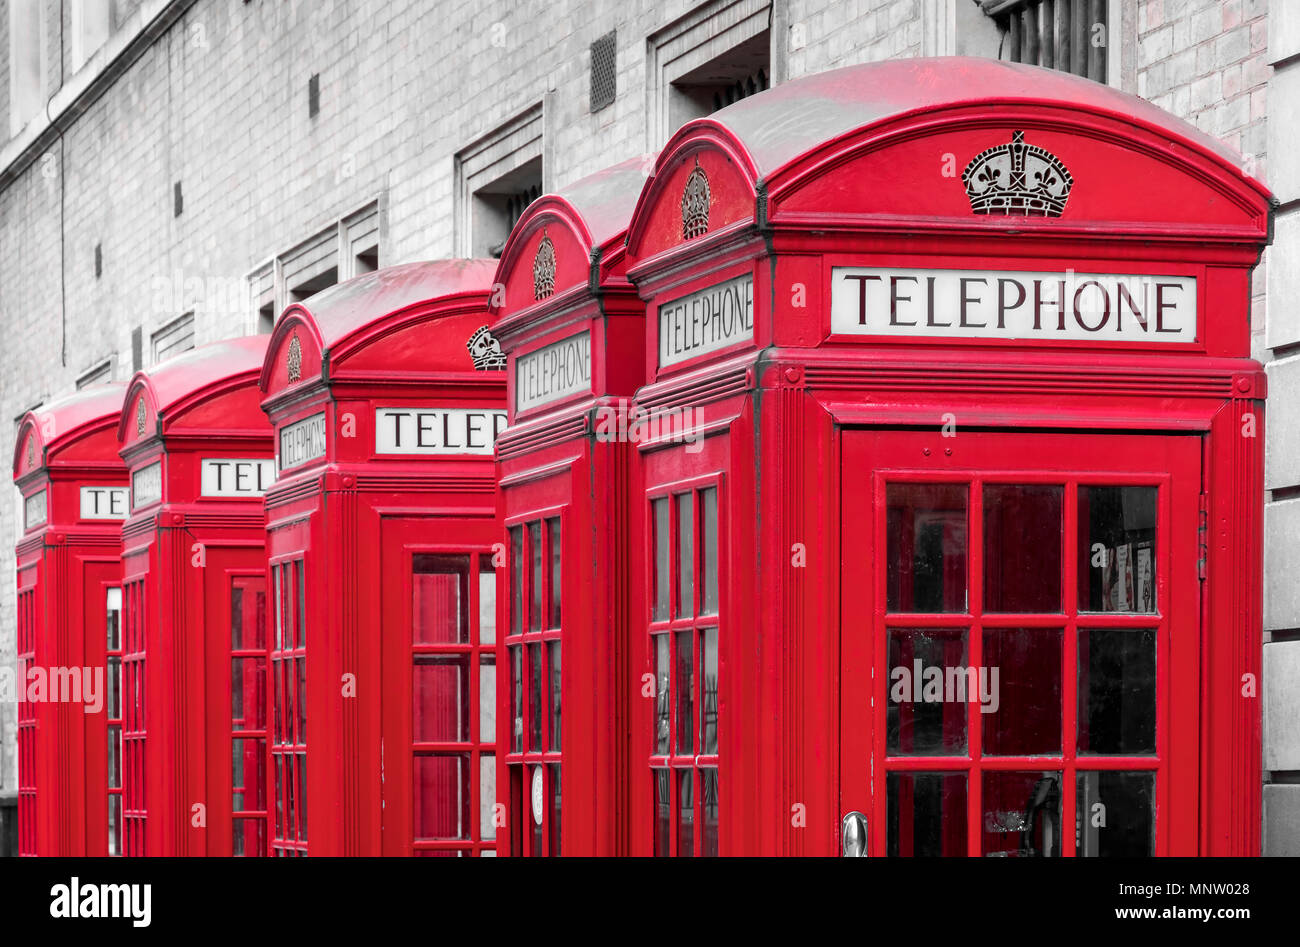 A Row of Red British Telephone Boxes, London, England, UK - Stock Image